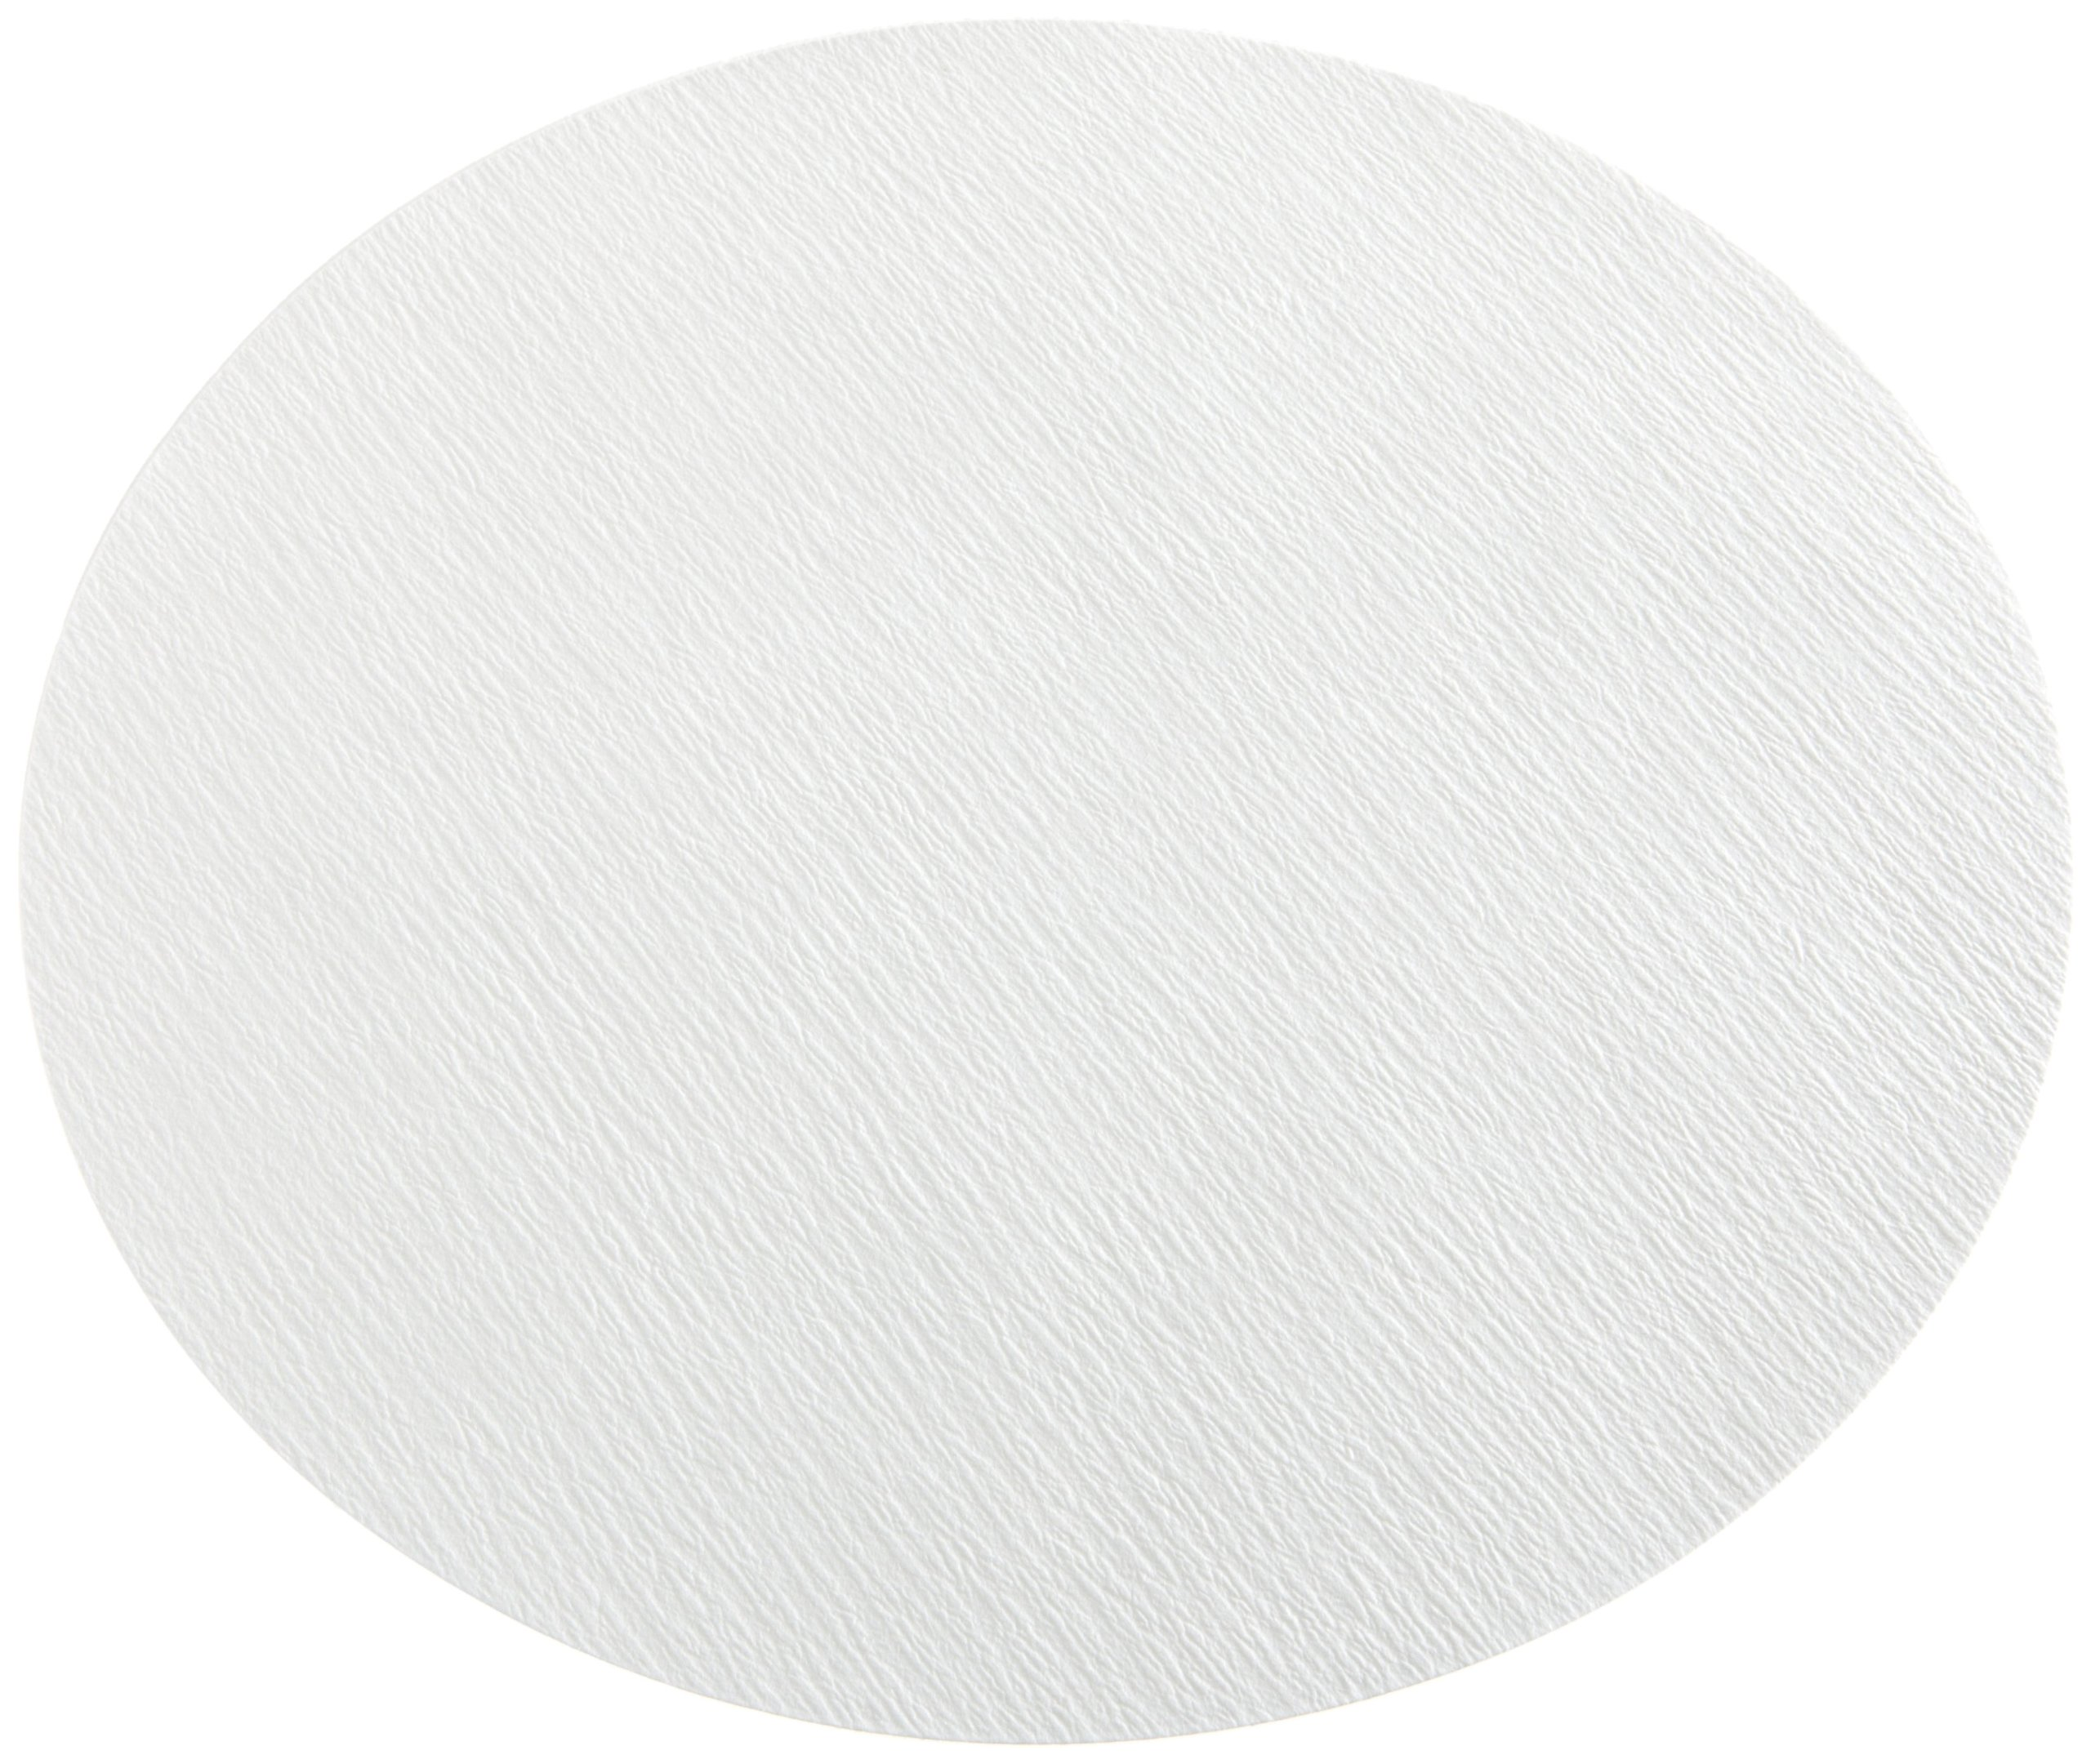 Bel-Art Cellulose Filter Paper Discs; for 18 in. I.D. Funnels (Pack of 100) (H14632-0018)